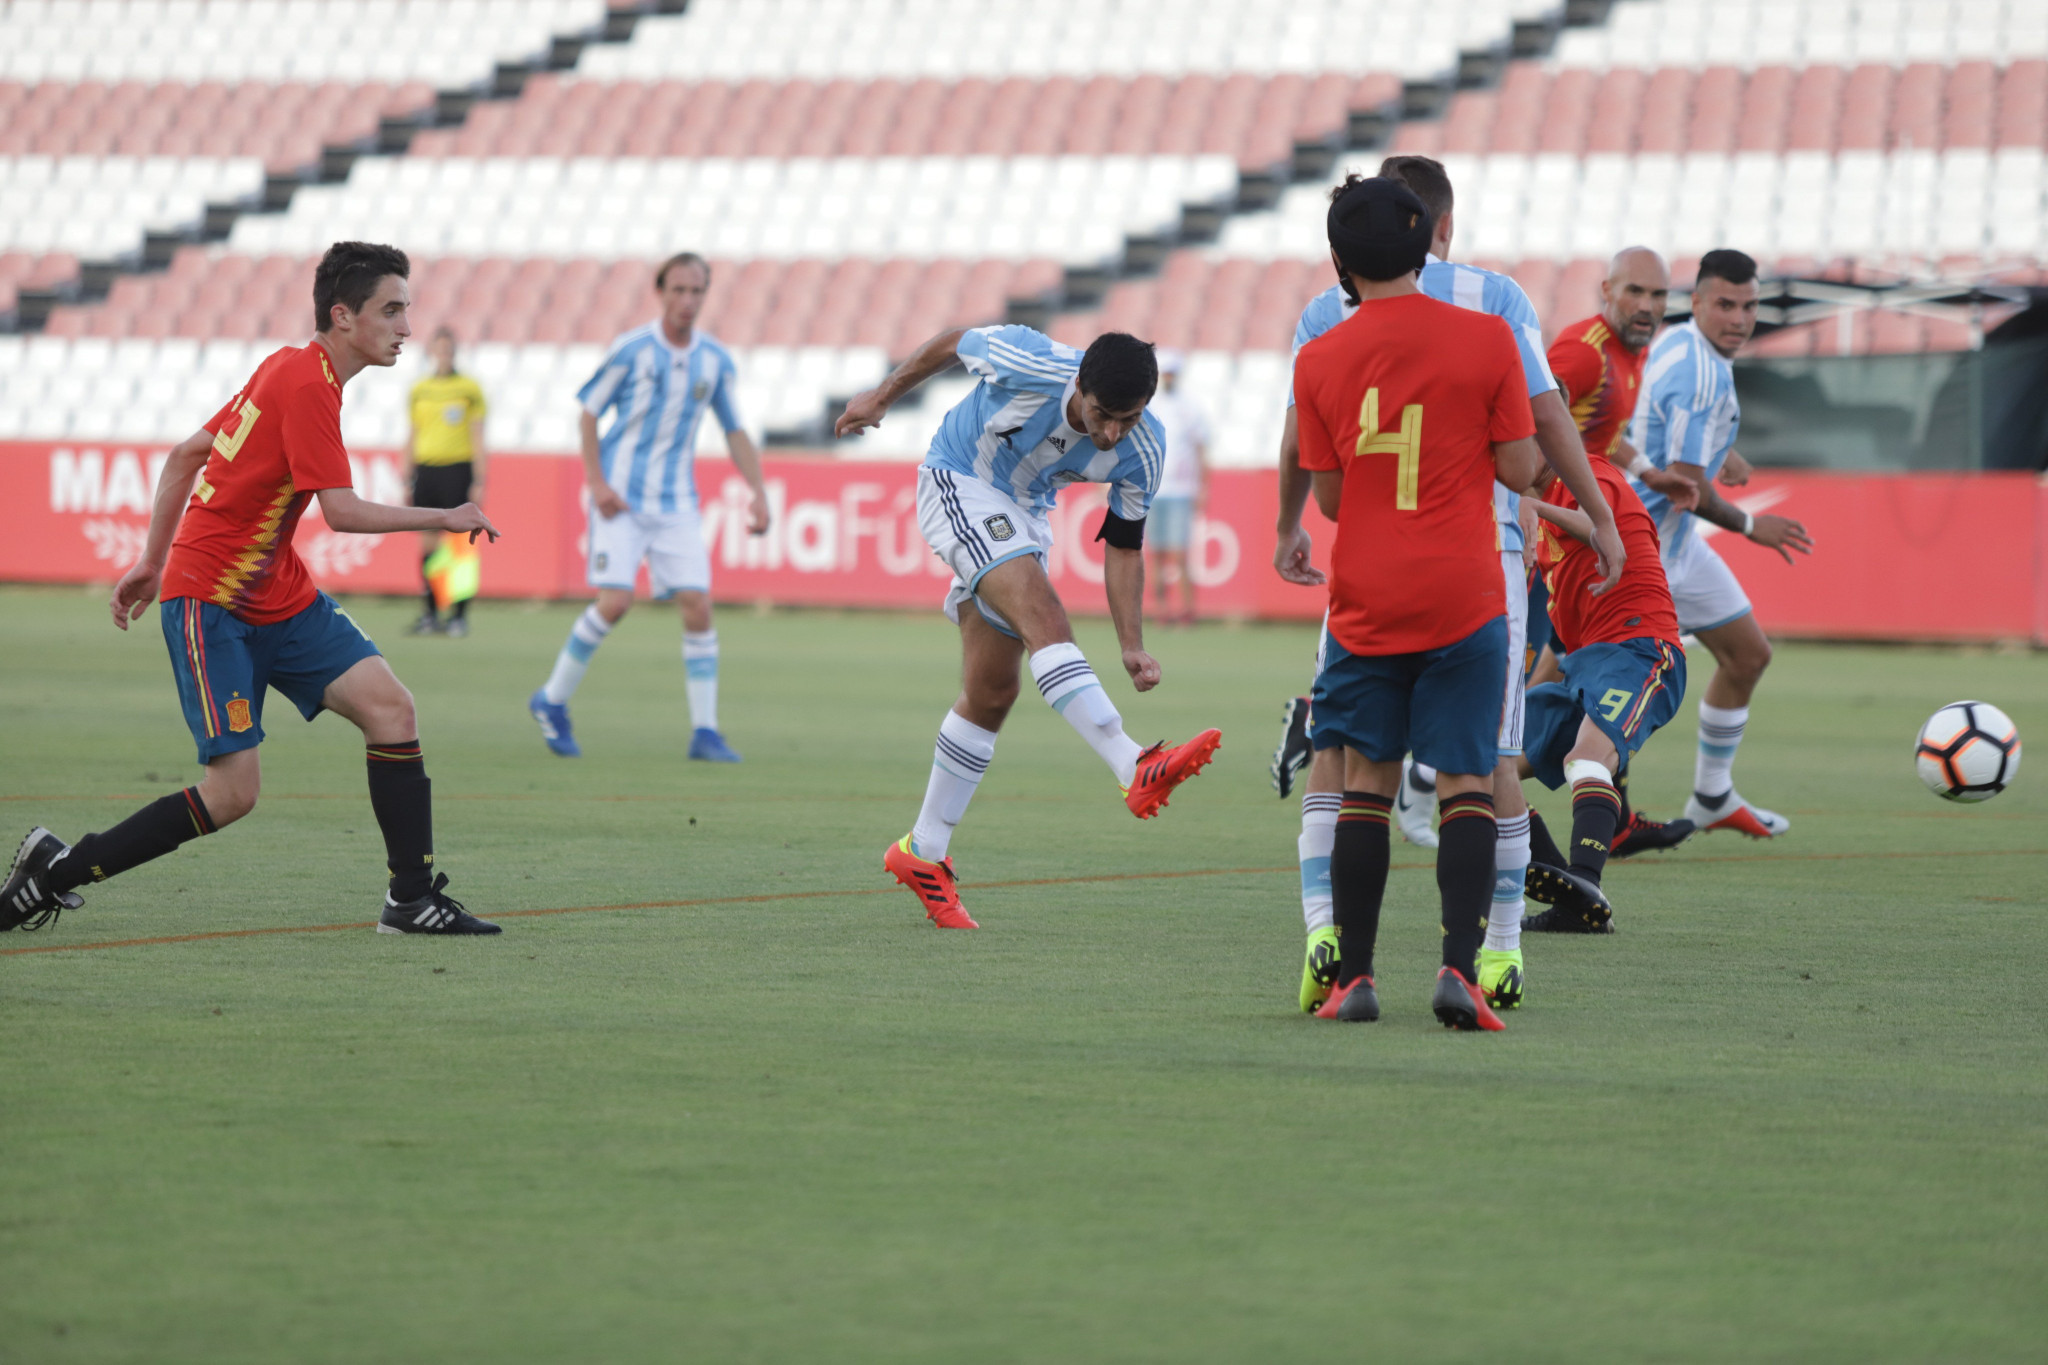 Argentina thrash hosts Spain in opening match of IFCPF World Cup